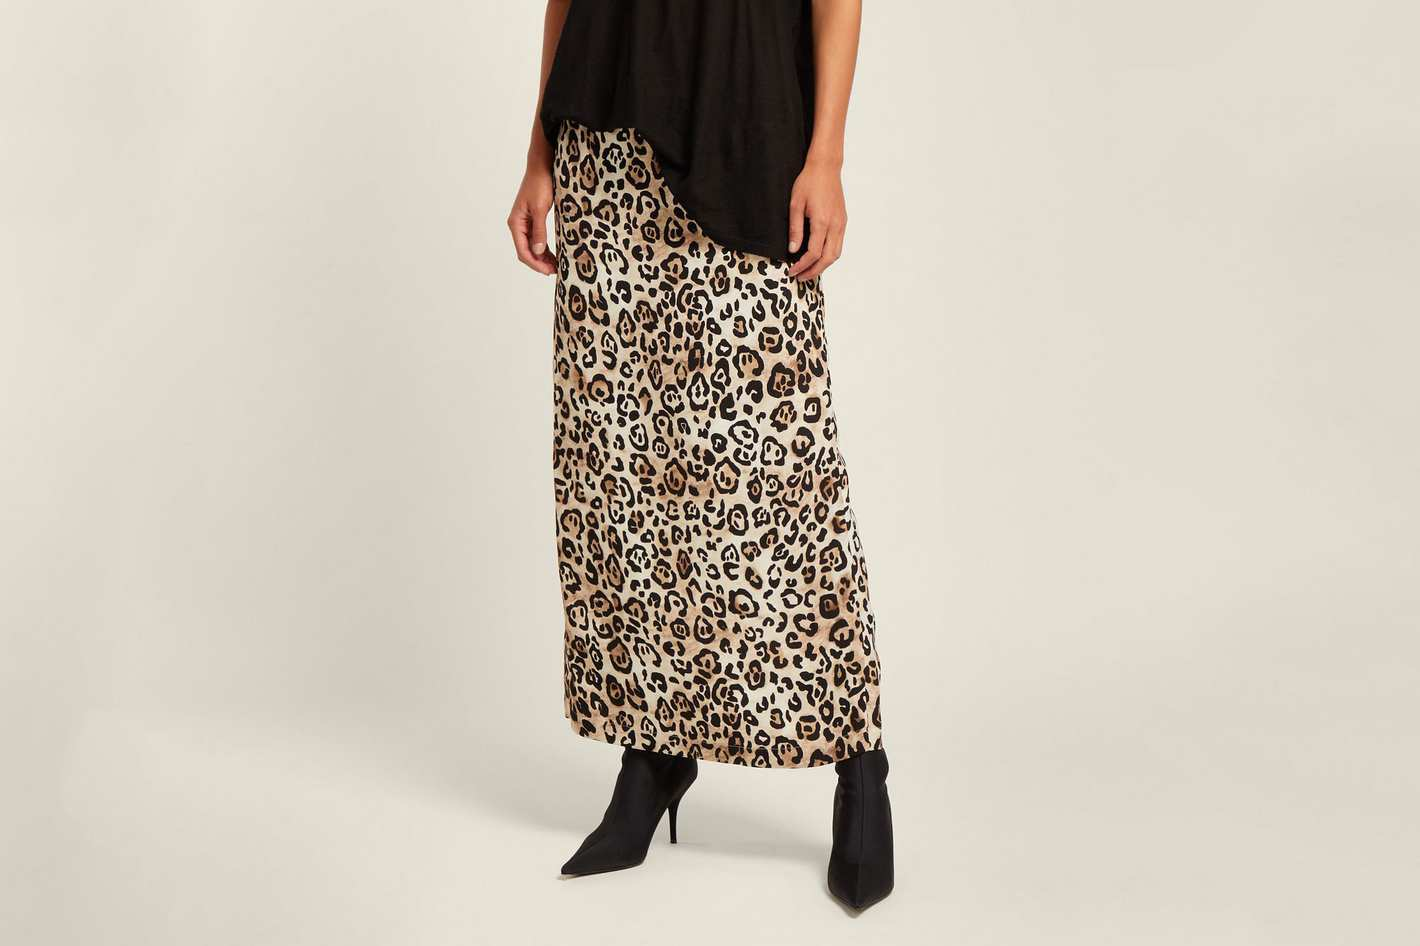 683ad17d8 The Best Leopard Skirts of 2019: Where to Buy the Trend